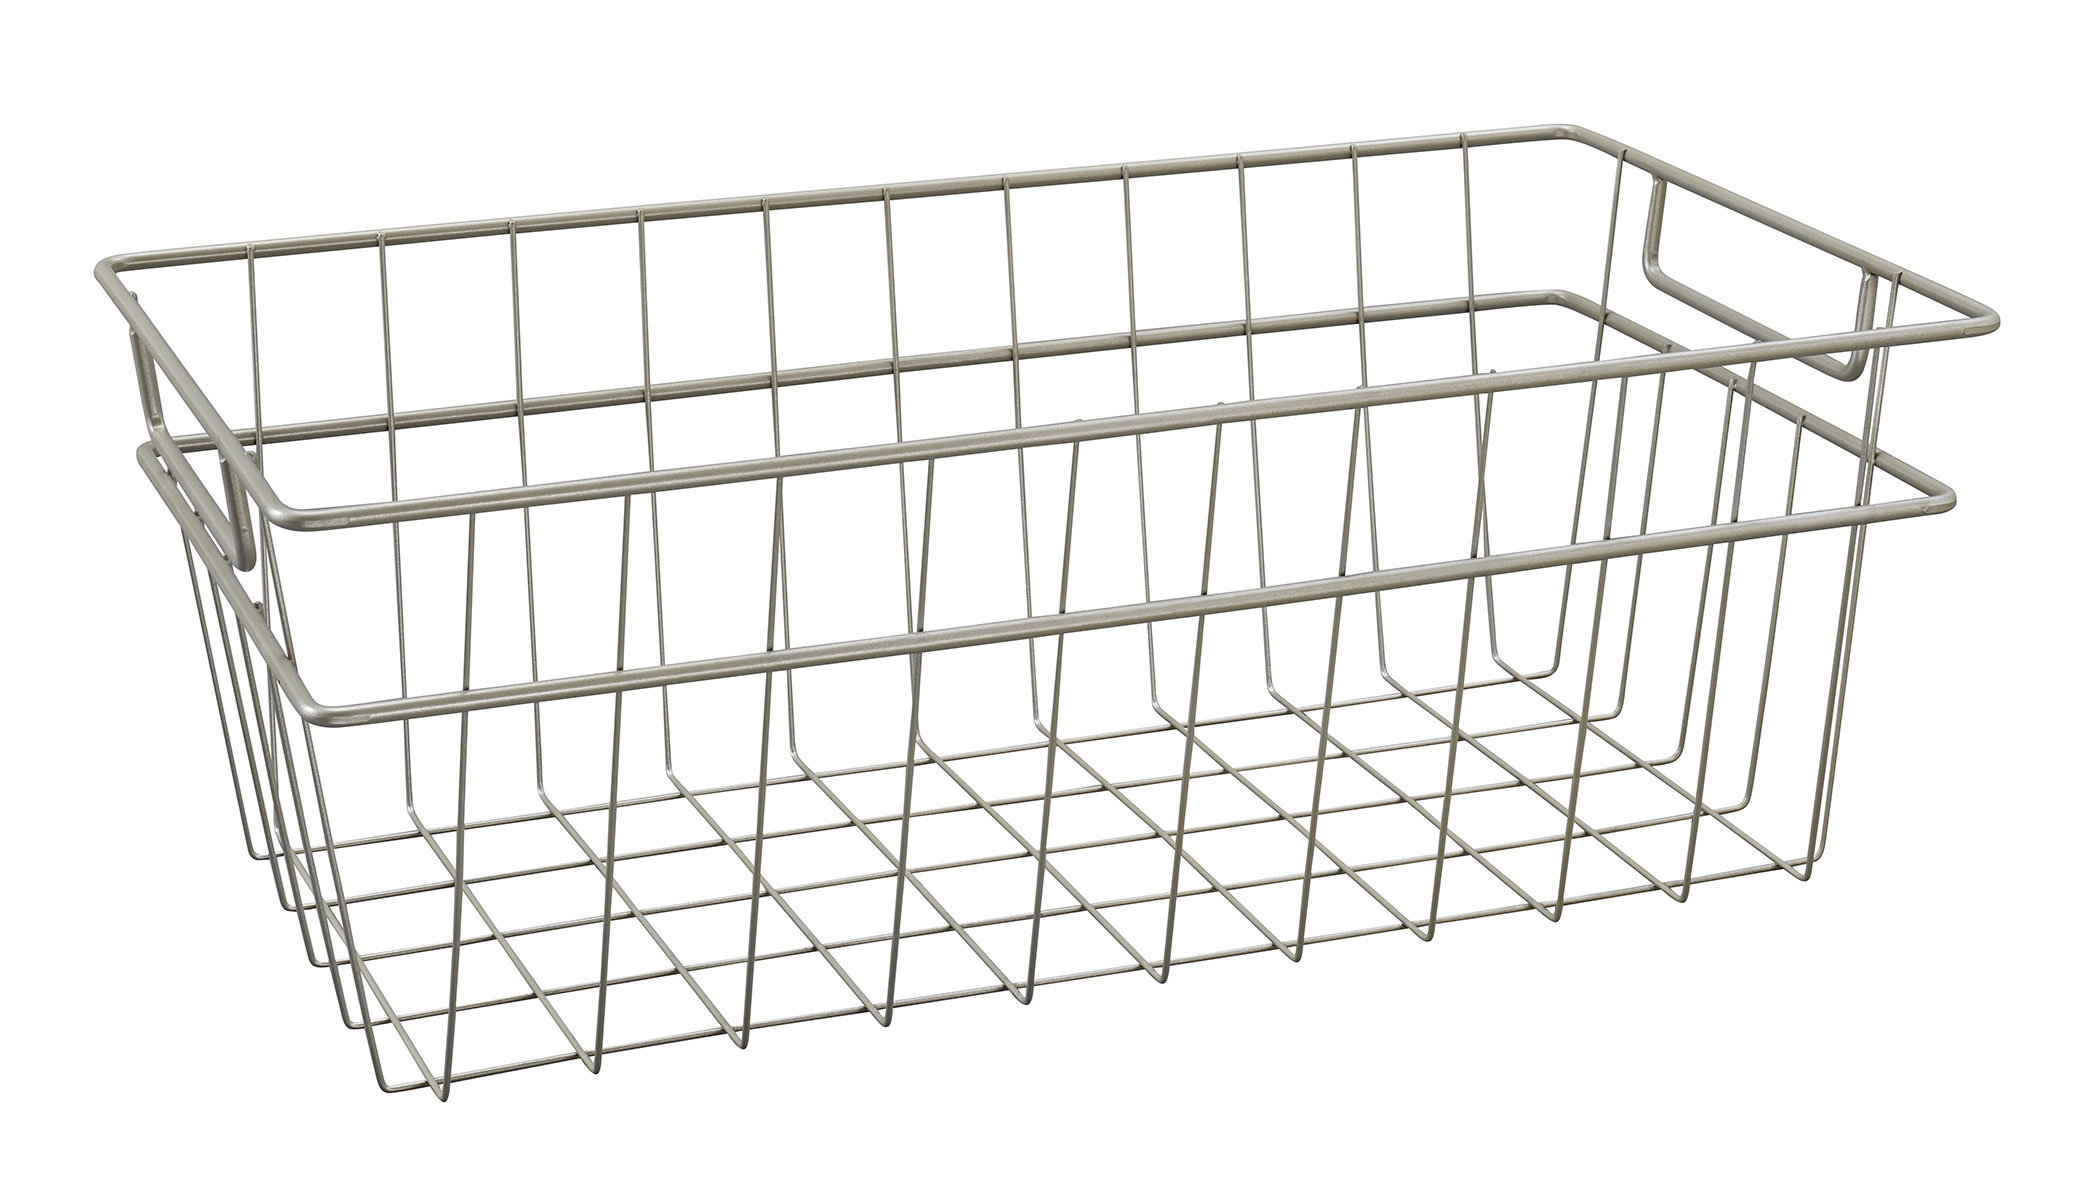 Shop The Container Store's large wire baskets collection & get free shipping on orders of $75 or more + free in-store pickup every day. Find everything you need to organize your home, office and life, & the best of our large wire baskets solutions at techclux.gq